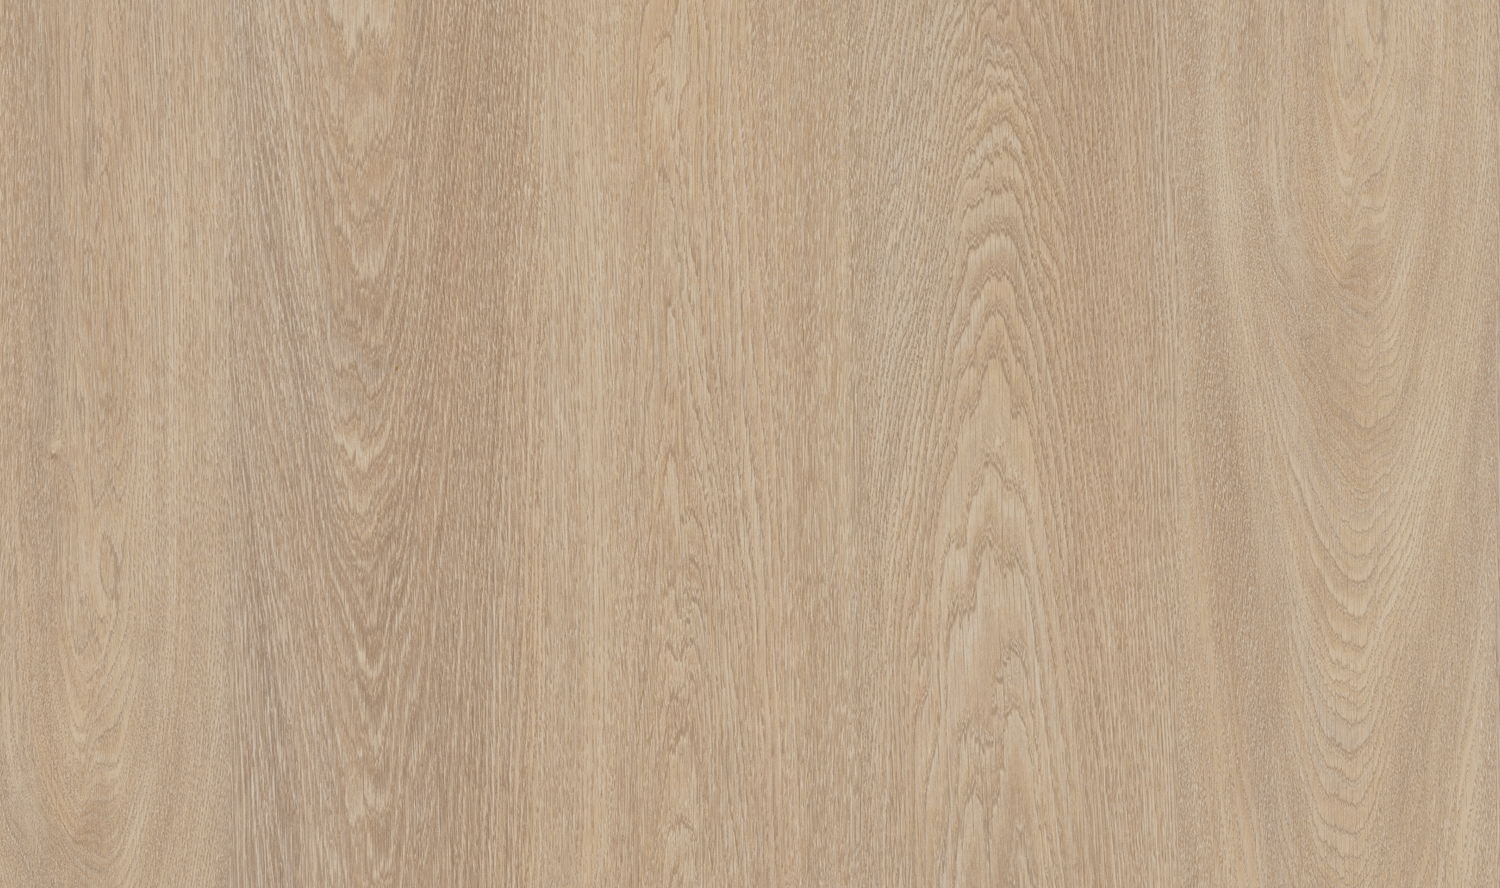 Era Laminates Collection For Walnut Laminate-Sundek International